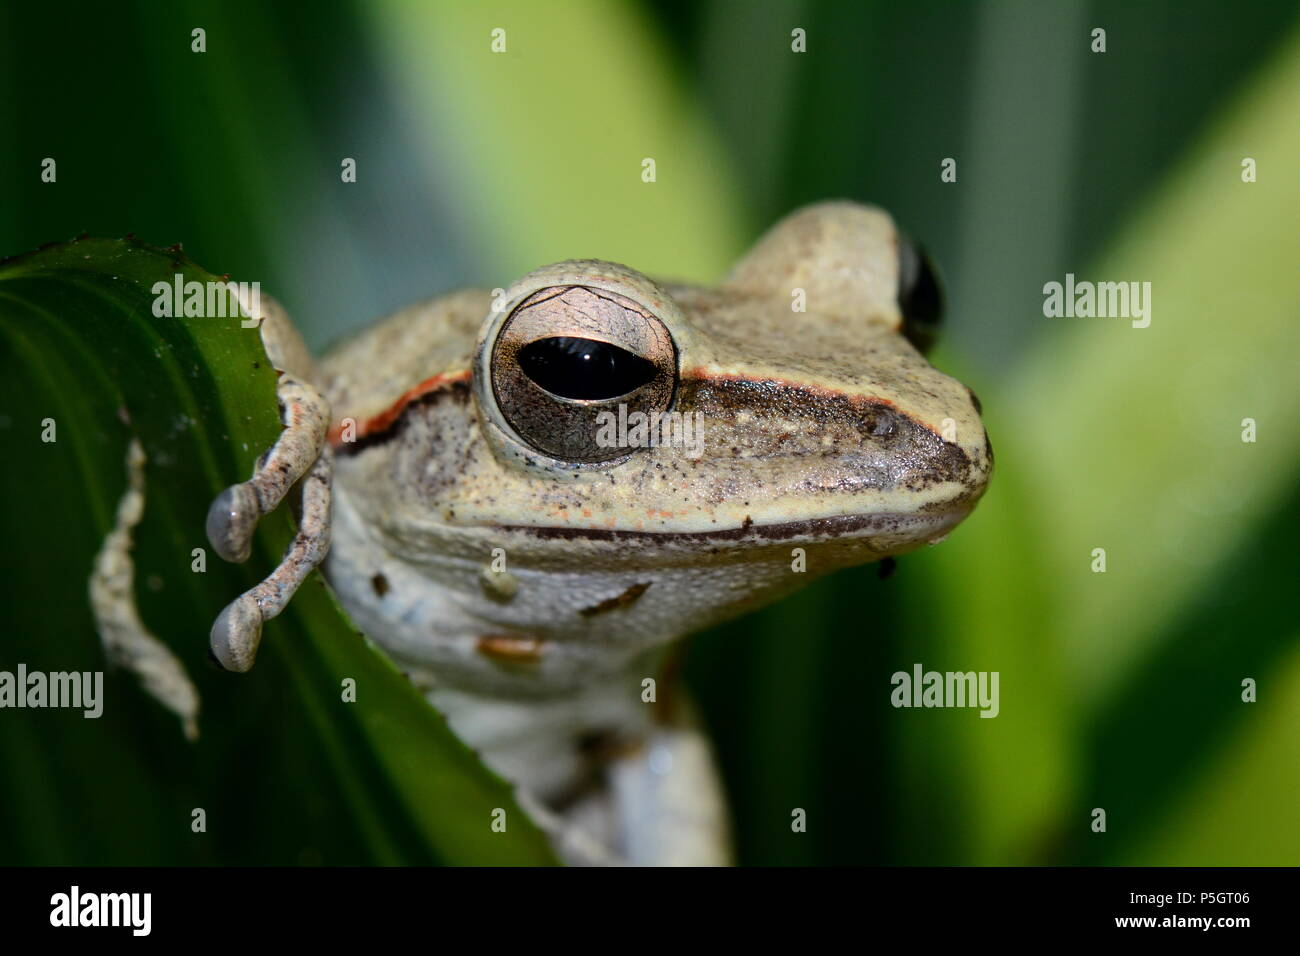 A tree frog poses for the camera in the gardens. - Stock Image